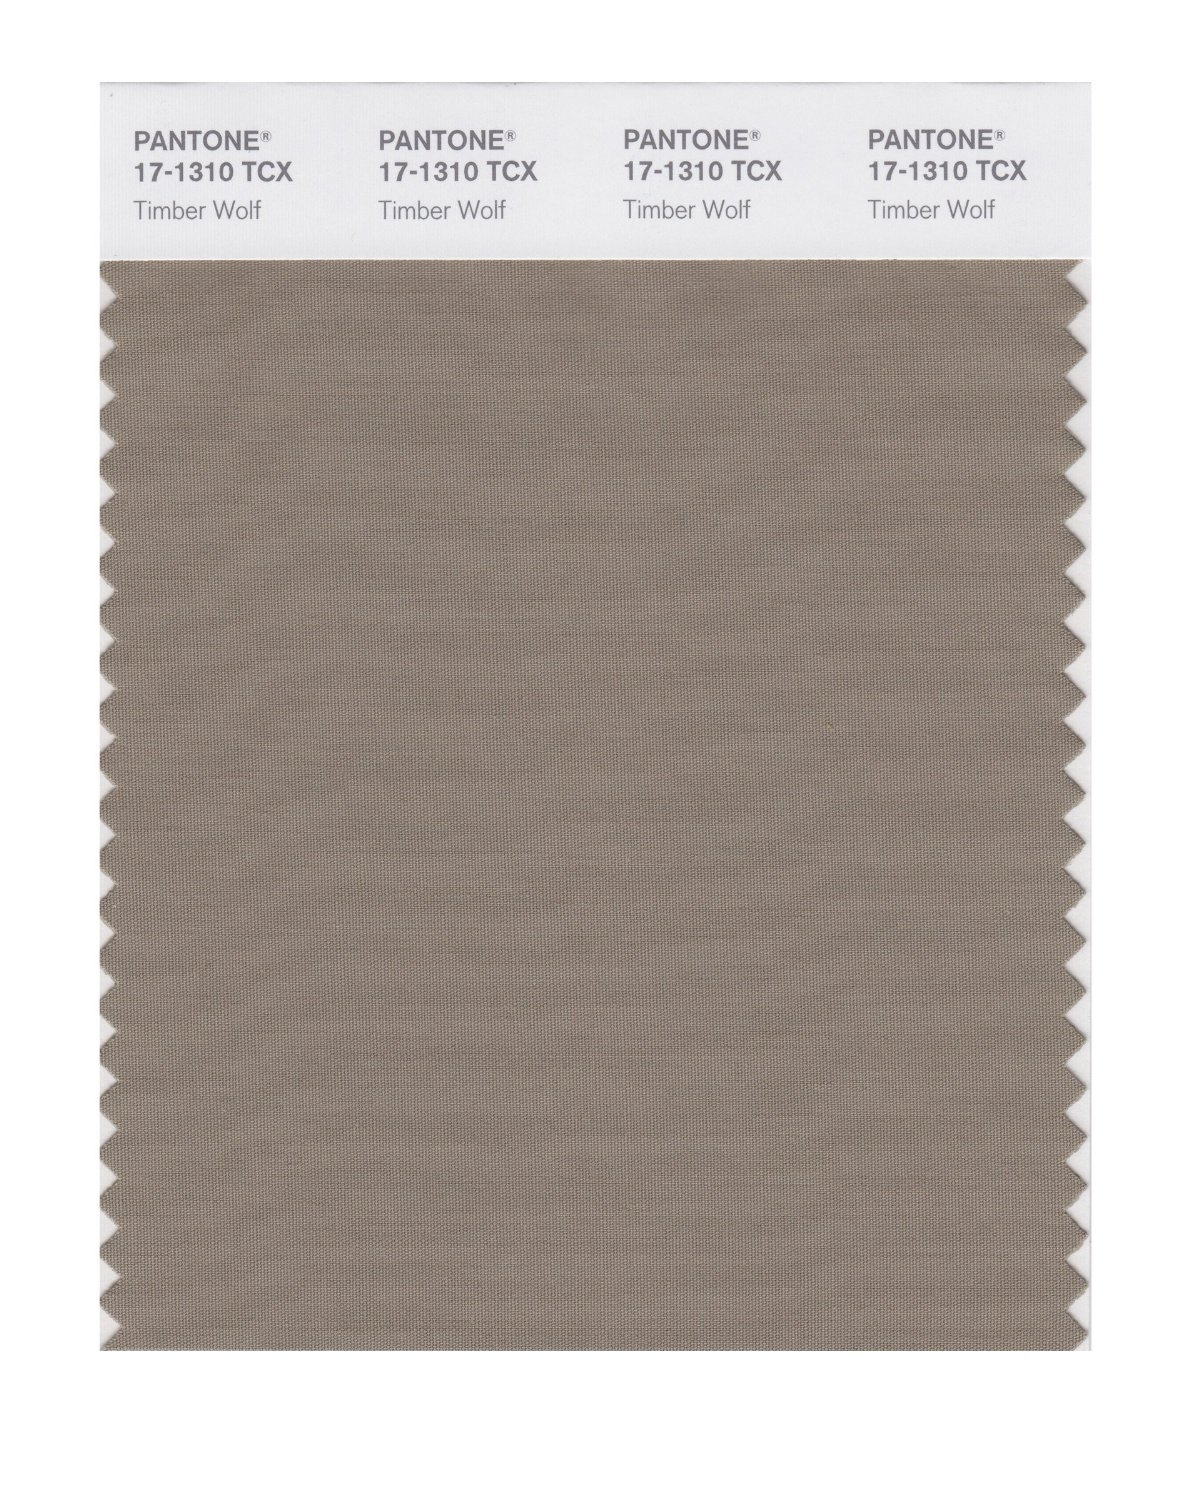 Pantone Smart Swatch 17-1310 Timber Wolf